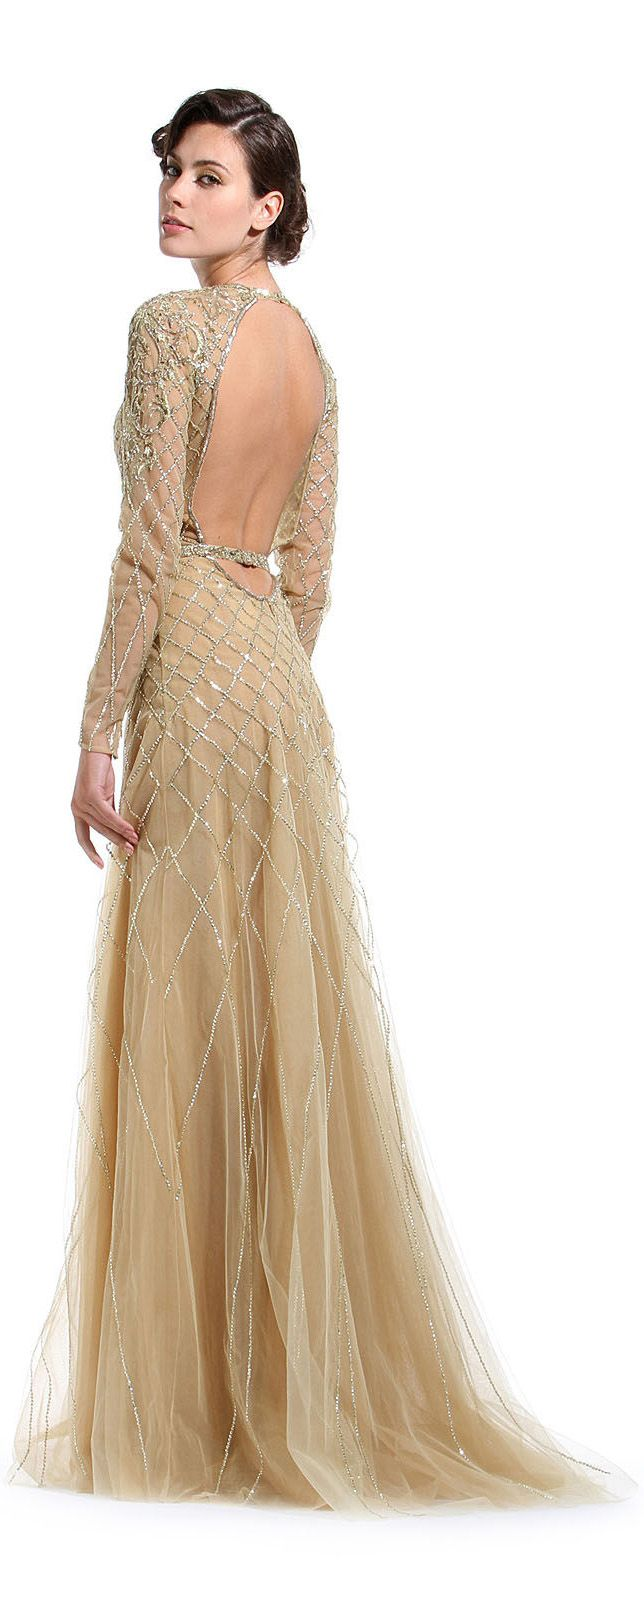 Zuhair Murad Haute Couture gown